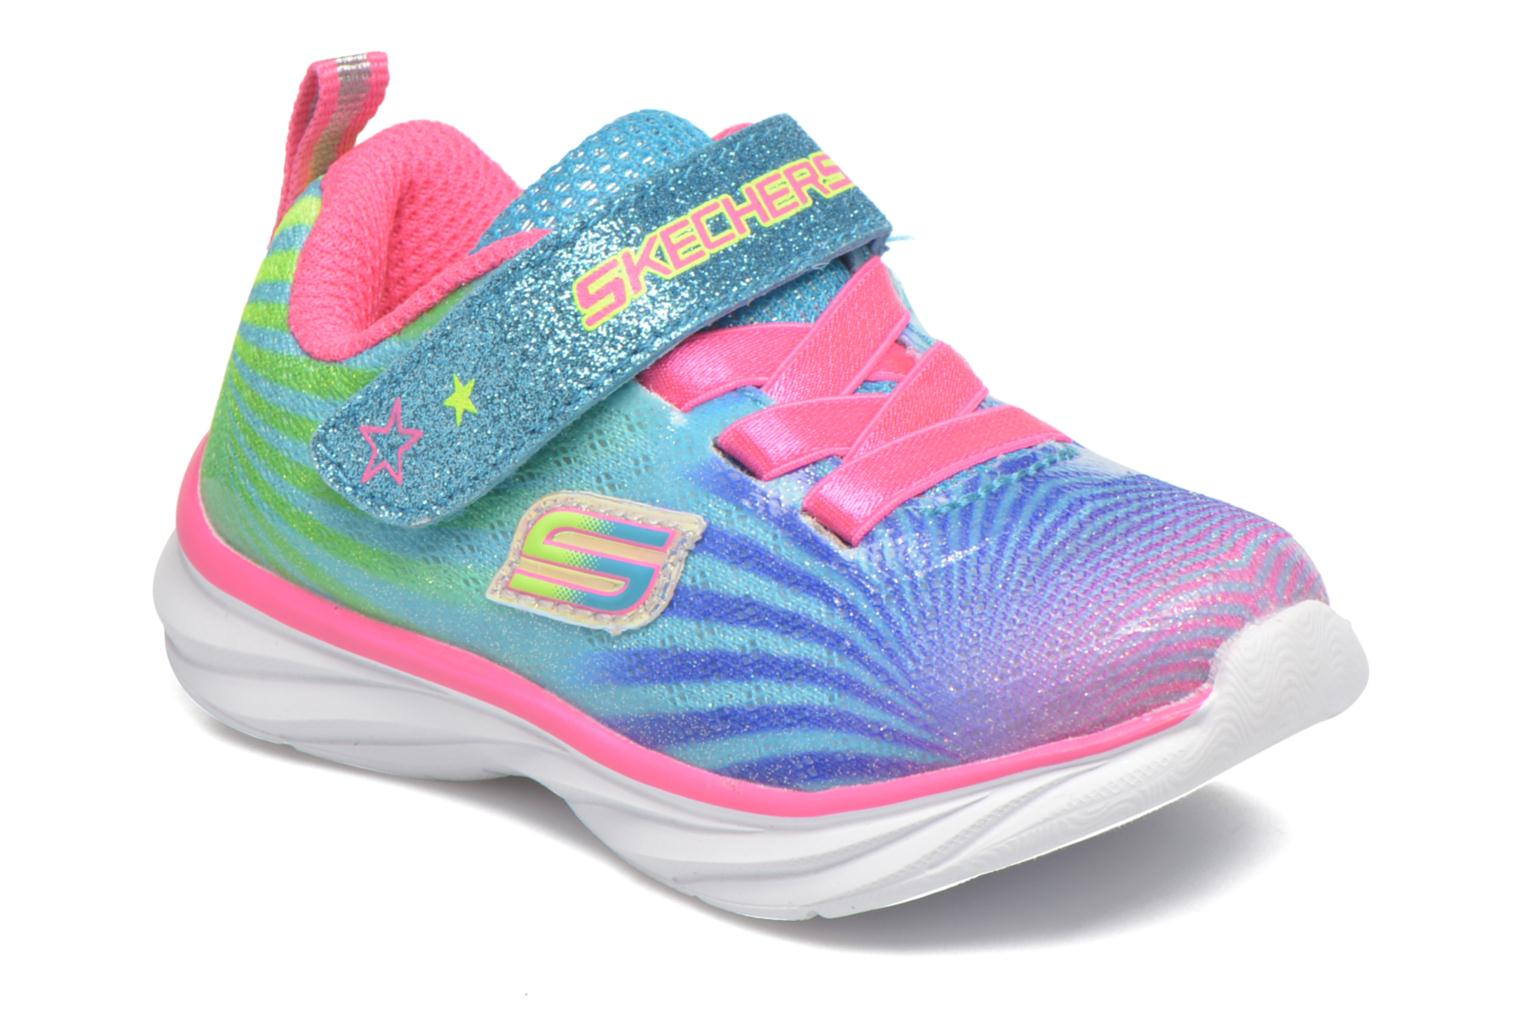 Sneakers Pepsters Colorbeam by Skechers